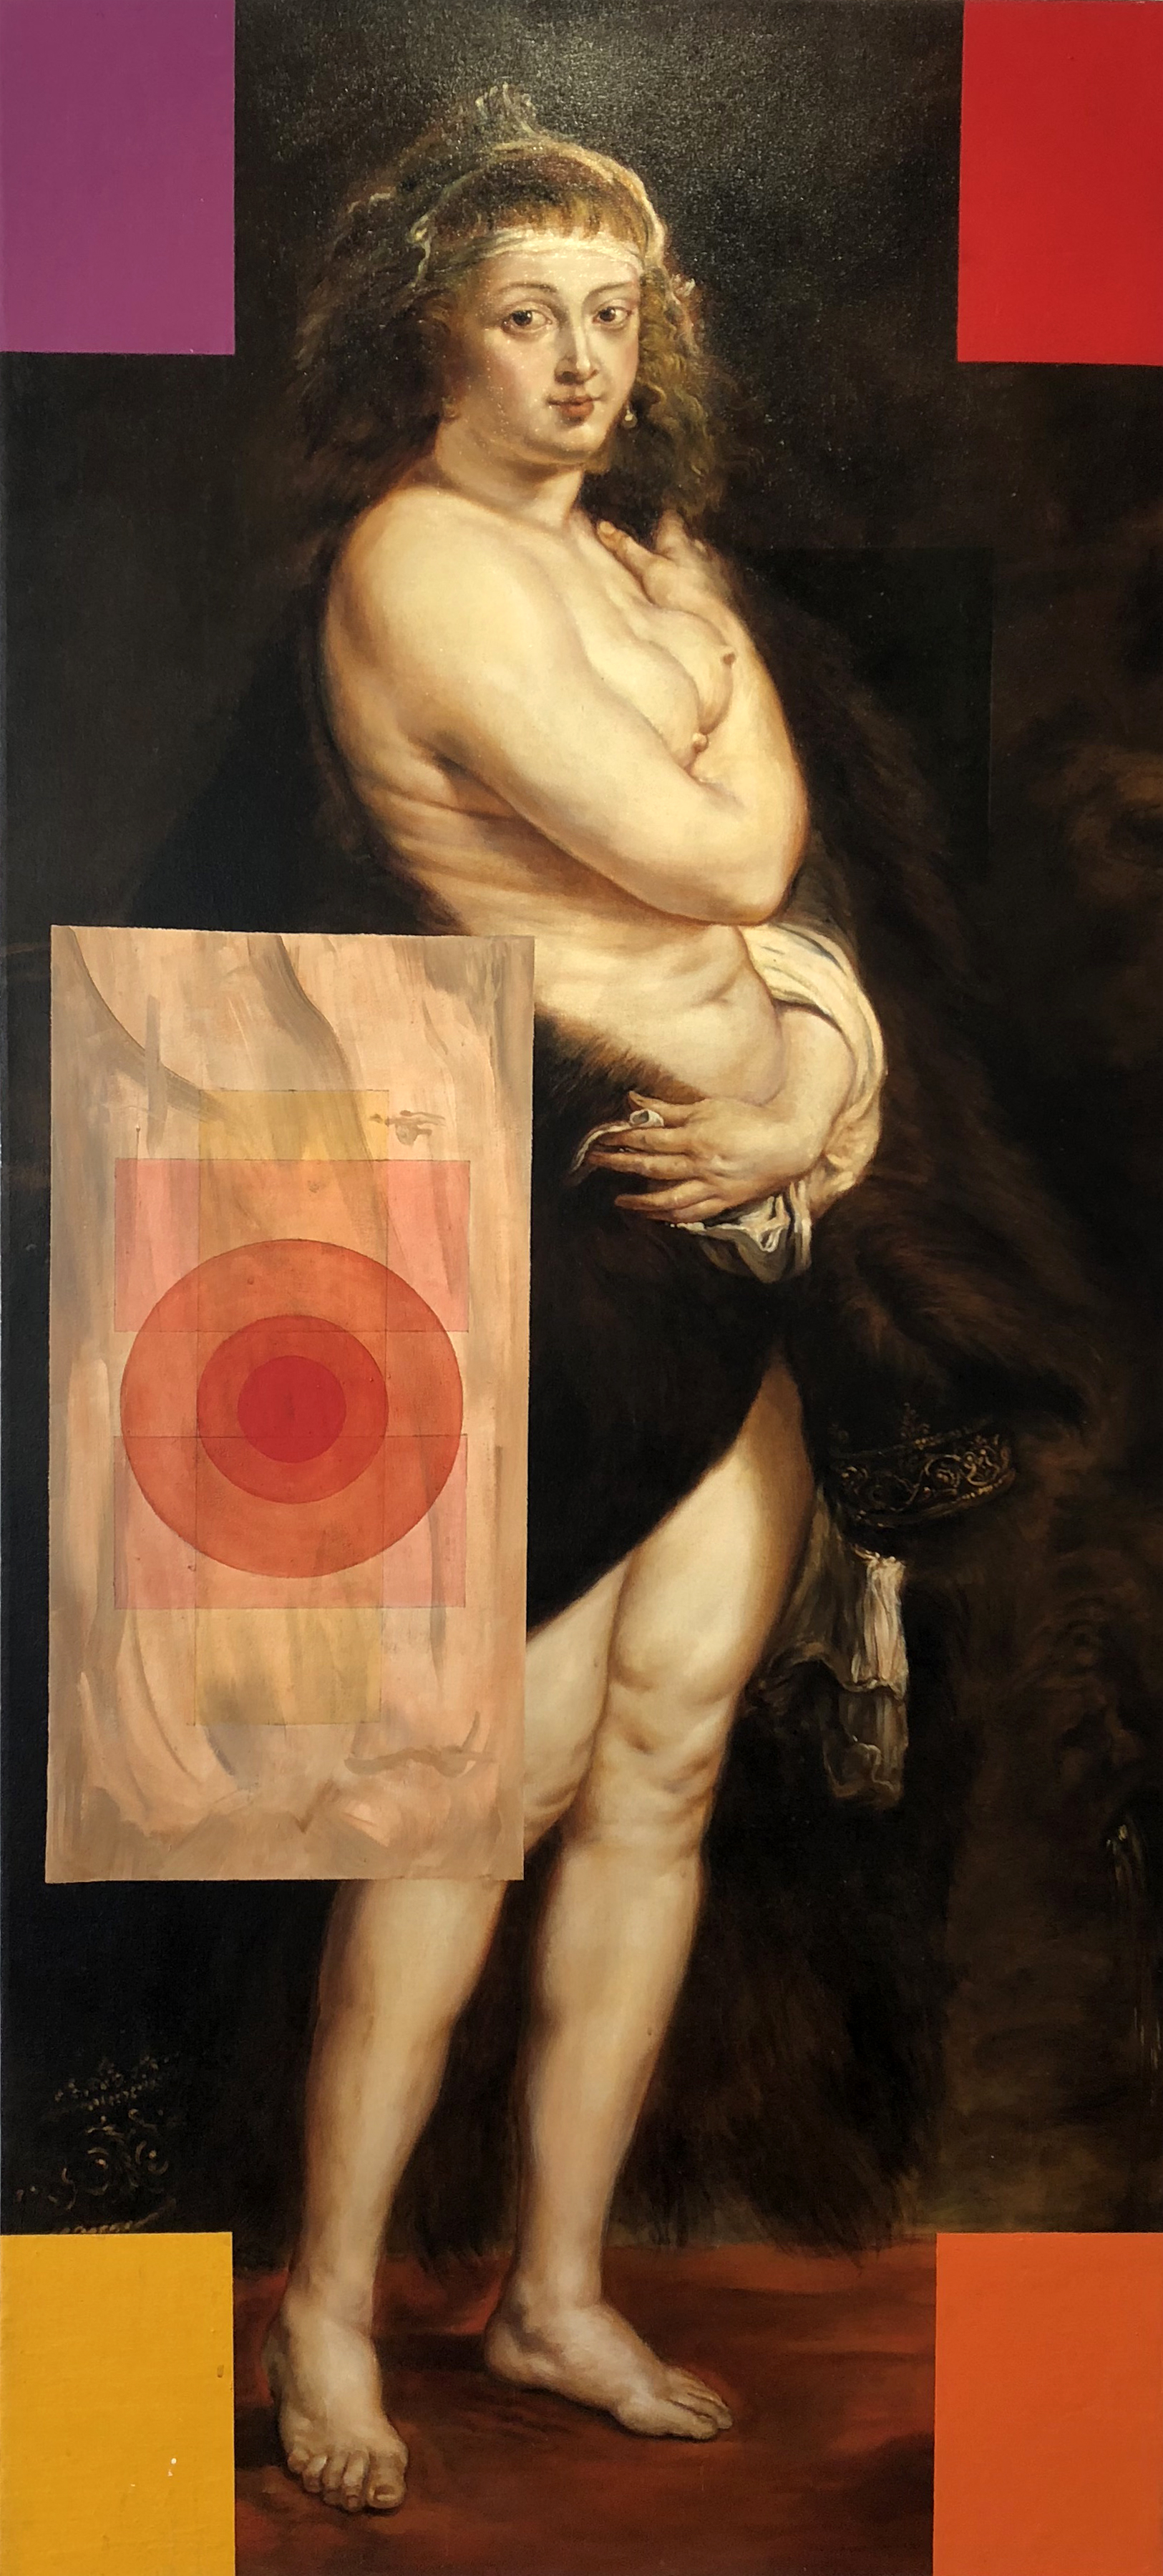 Untitled - Rubens (Paradigm Series), 66 x 30 inches / 167.5 x 76 cm, oil on canvas, 2008